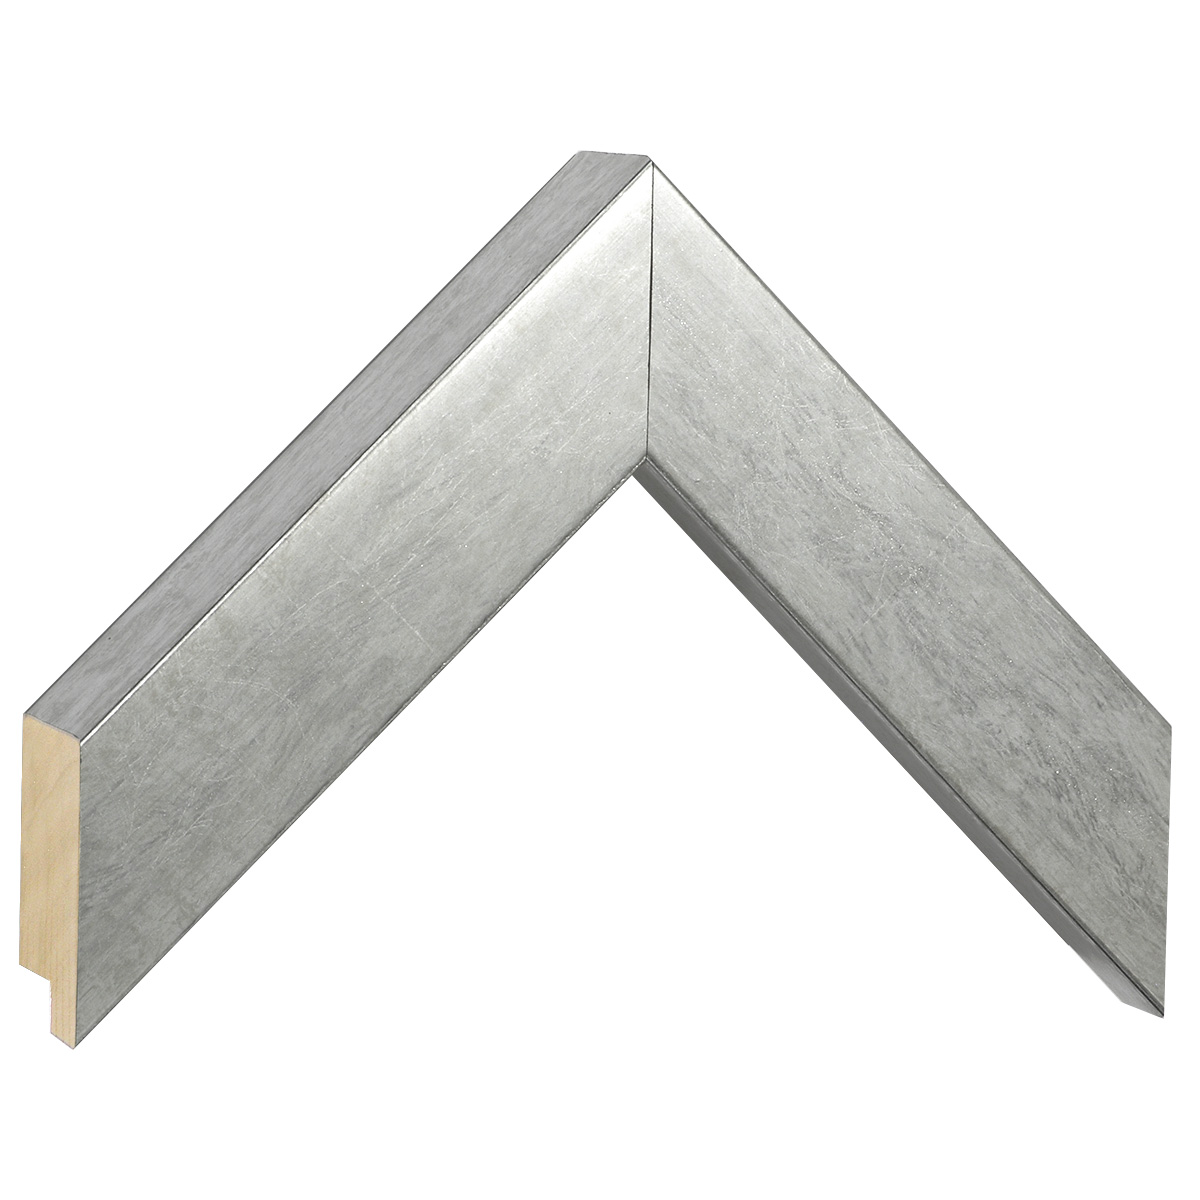 Moulding pine, width 40mm, height 45, silver